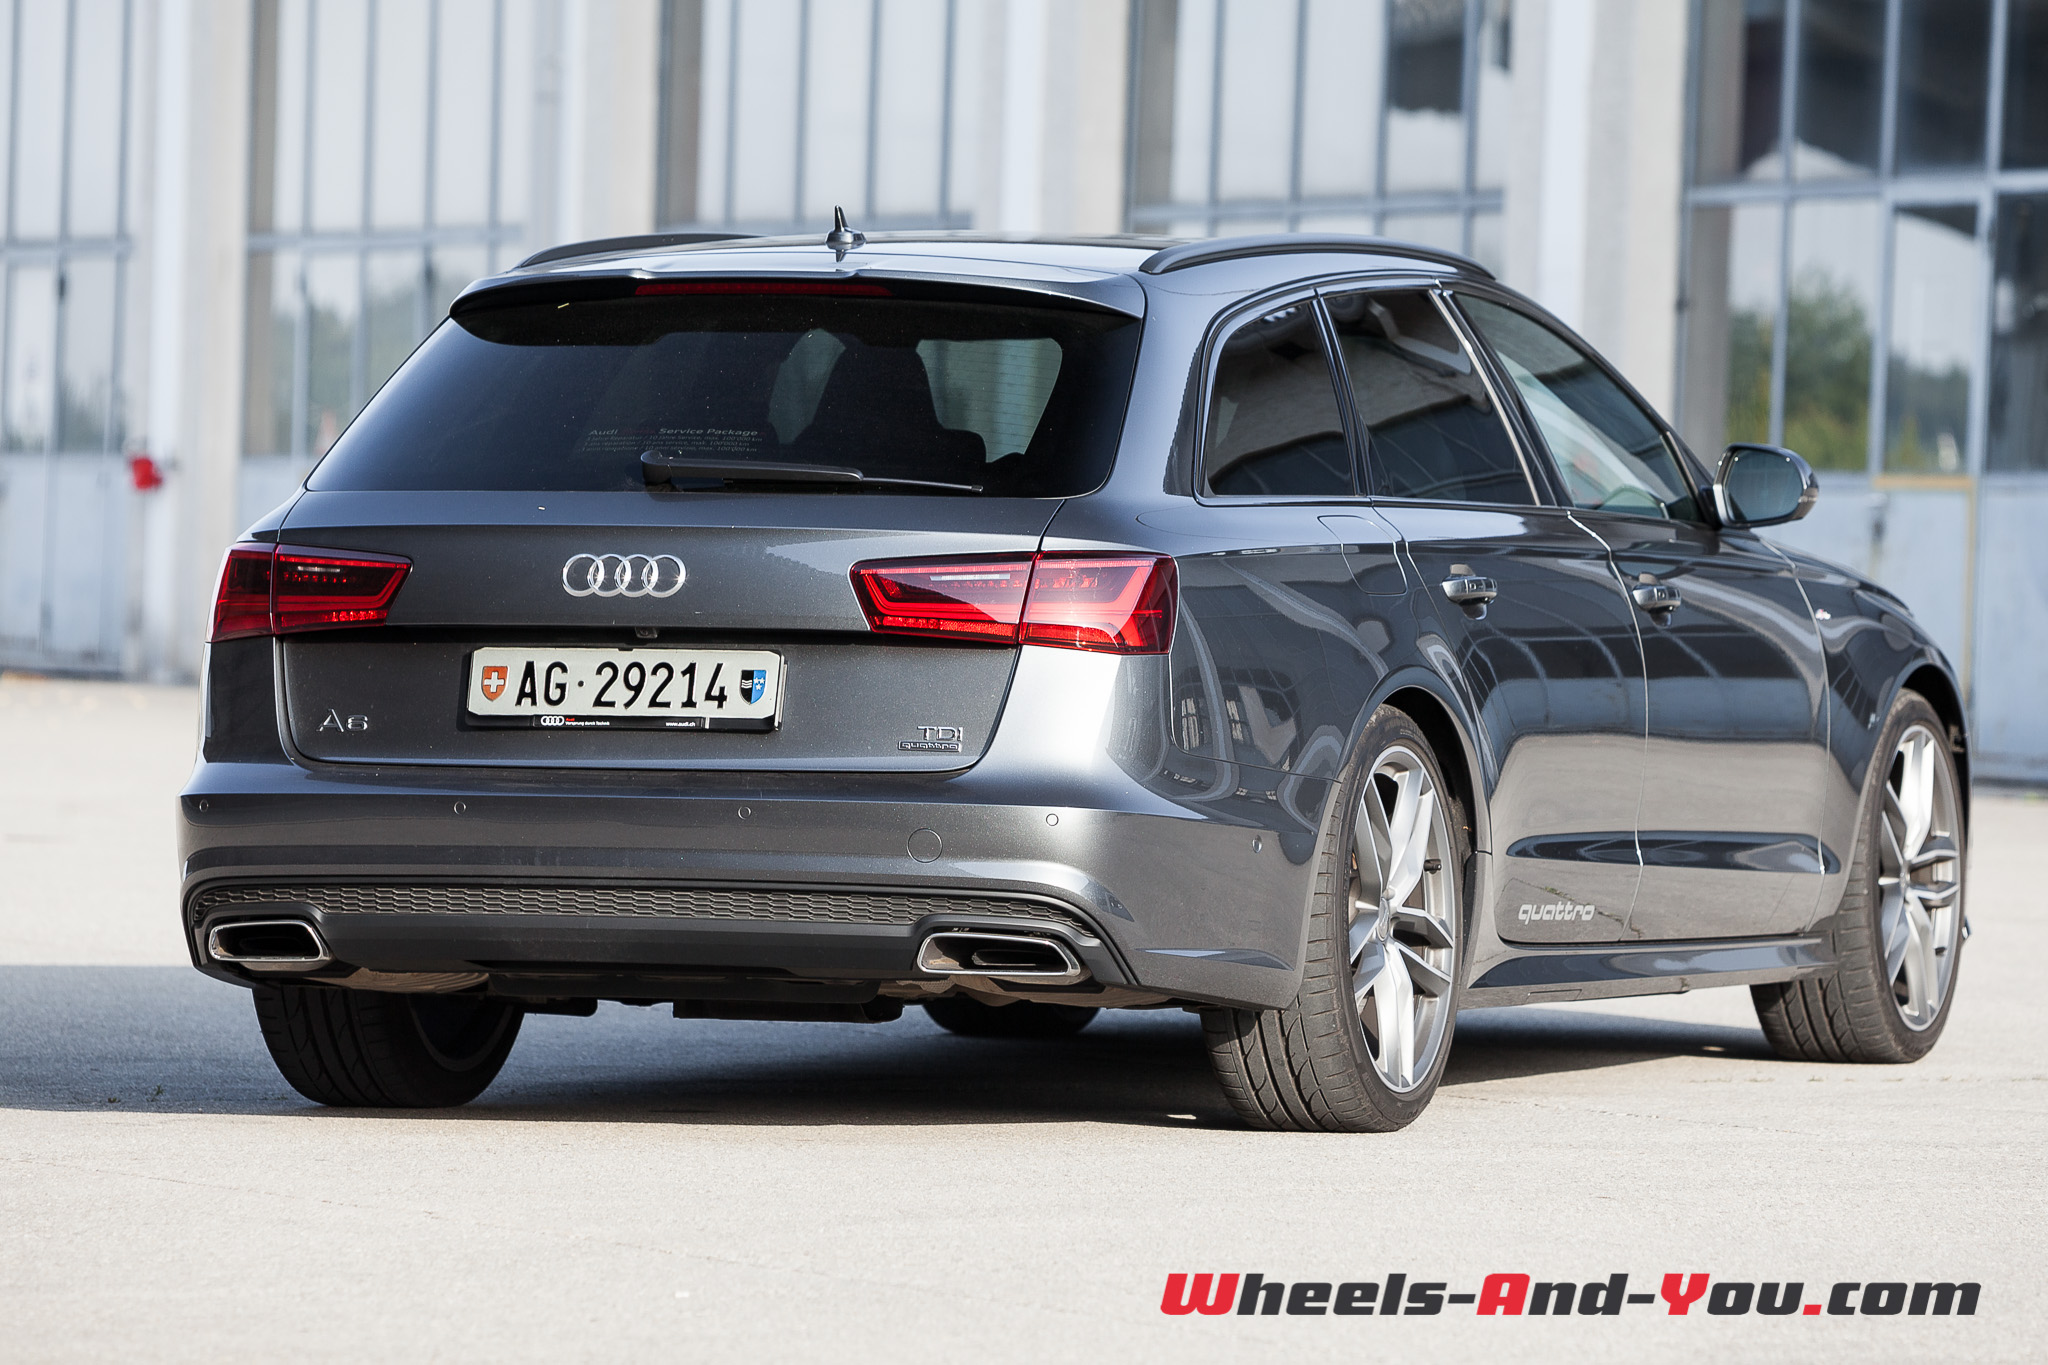 essai audi a6 avant 3 0 tdi 4 anneaux pour une a6 wheels and. Black Bedroom Furniture Sets. Home Design Ideas